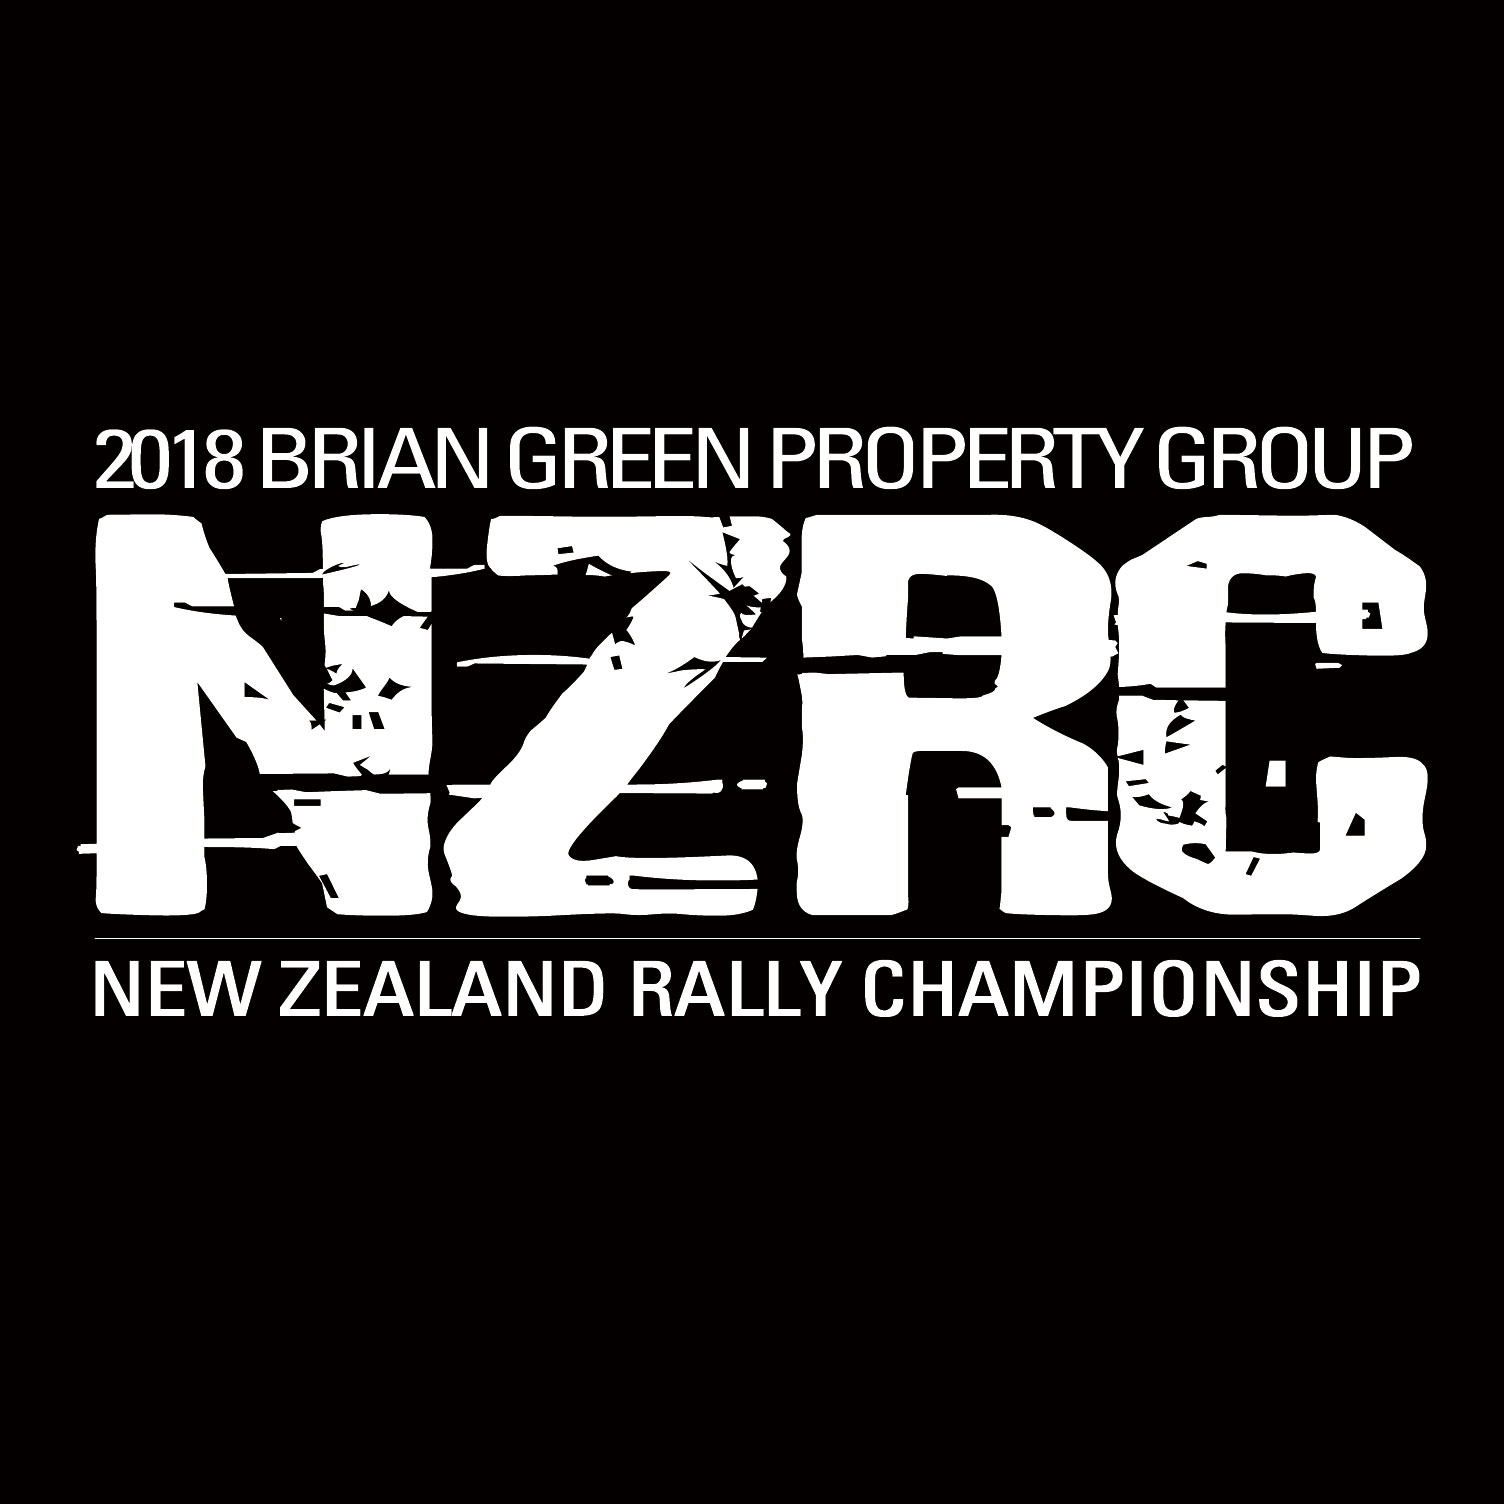 Holden Barina pair aim to take next step | :: Brian Green Property Group New Zealand Rally Championship ::